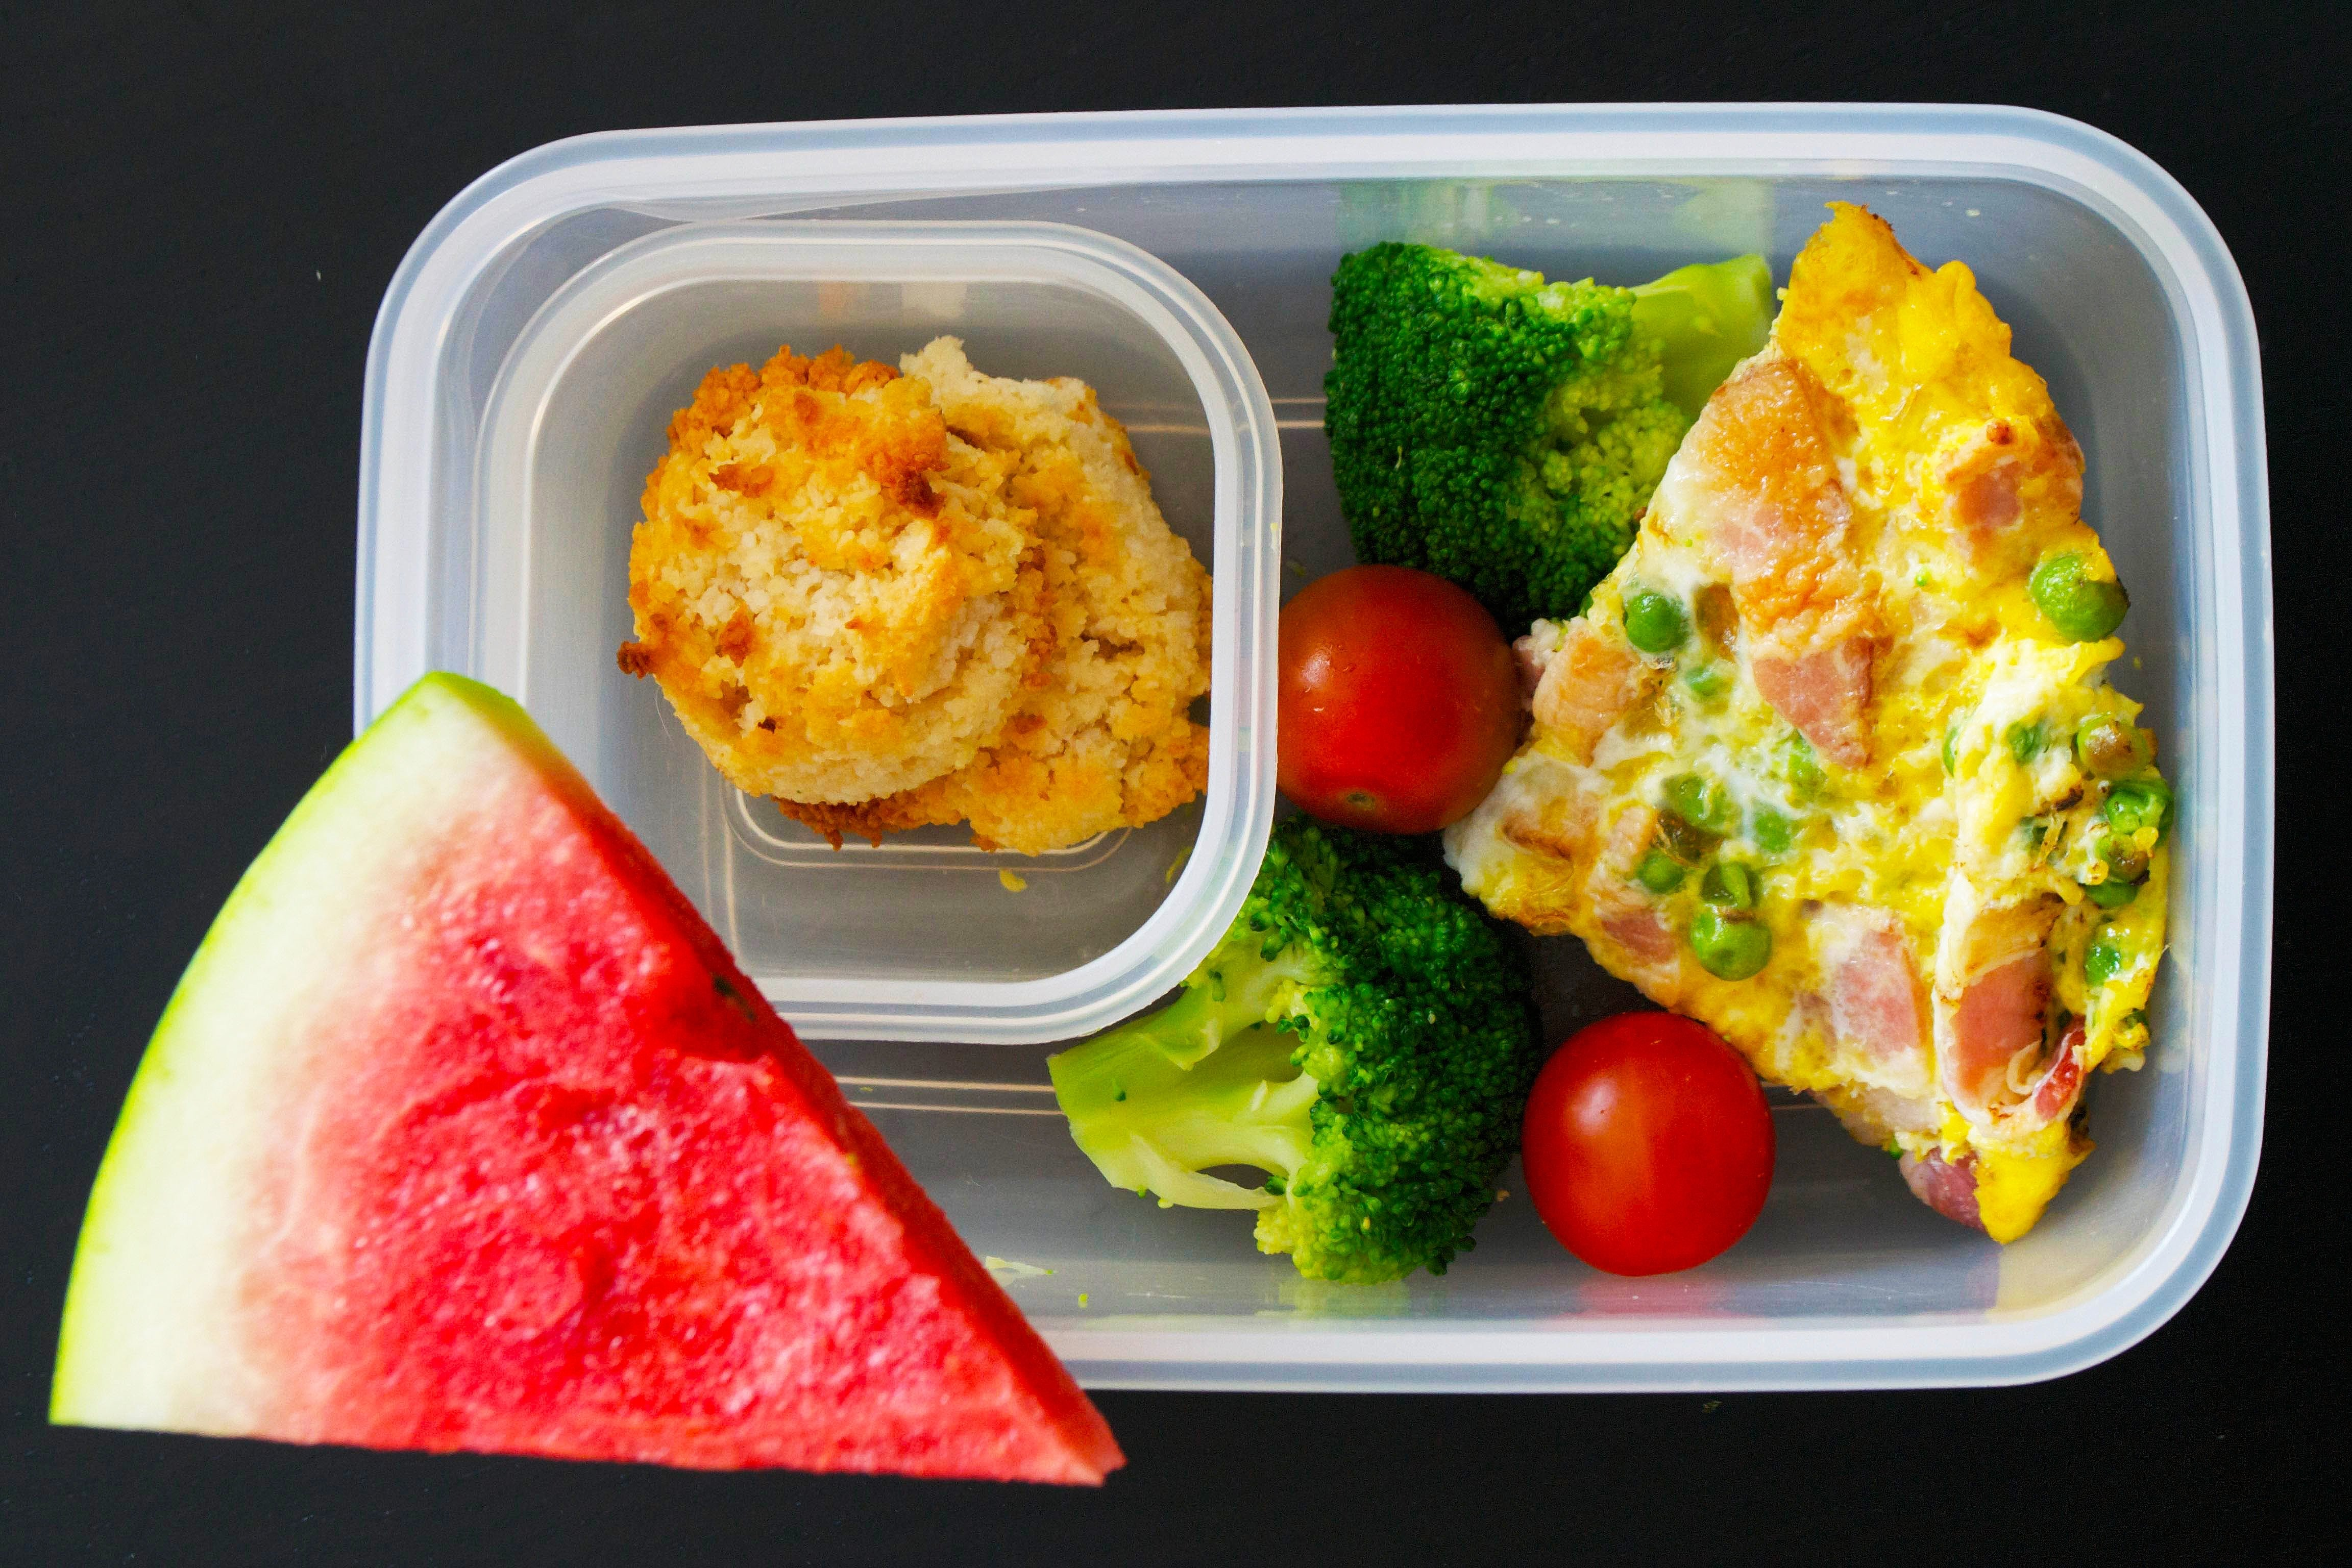 10 Wonderful Paleo Lunch Ideas For Kids 5 days of paleo packed lunches for kids and adults tooprimal eye 2 2021